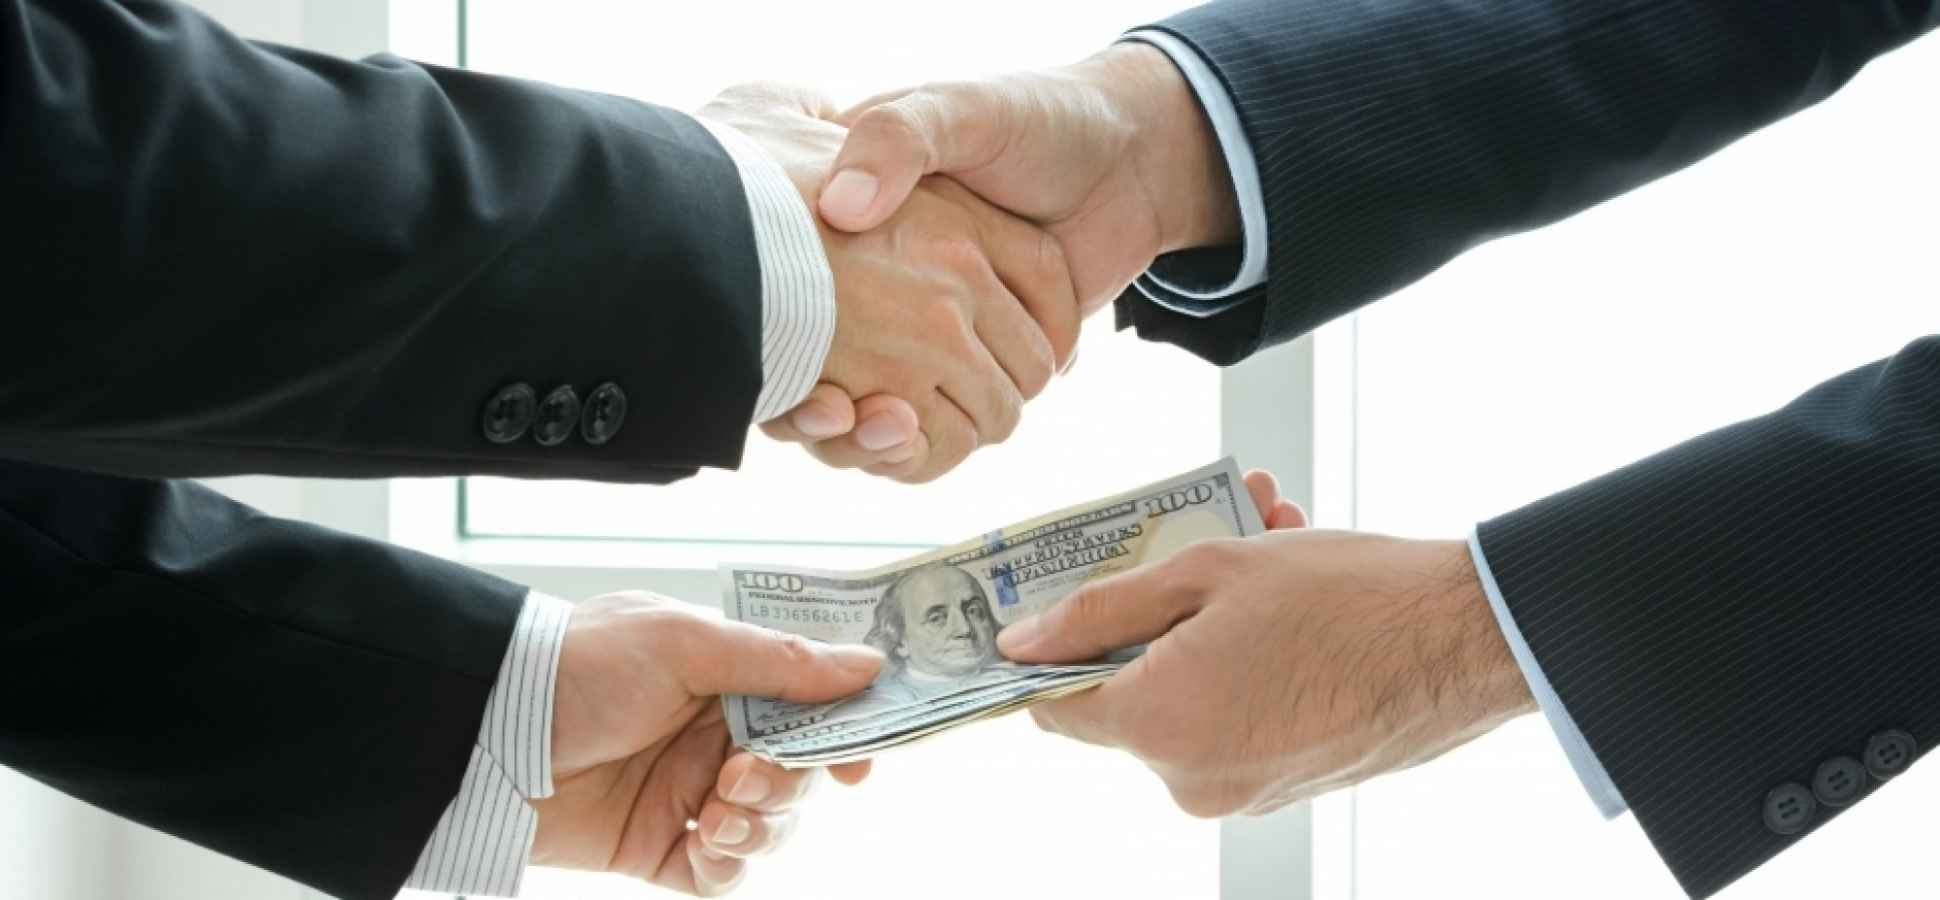 4 Steps to Negotiating a Great Salary